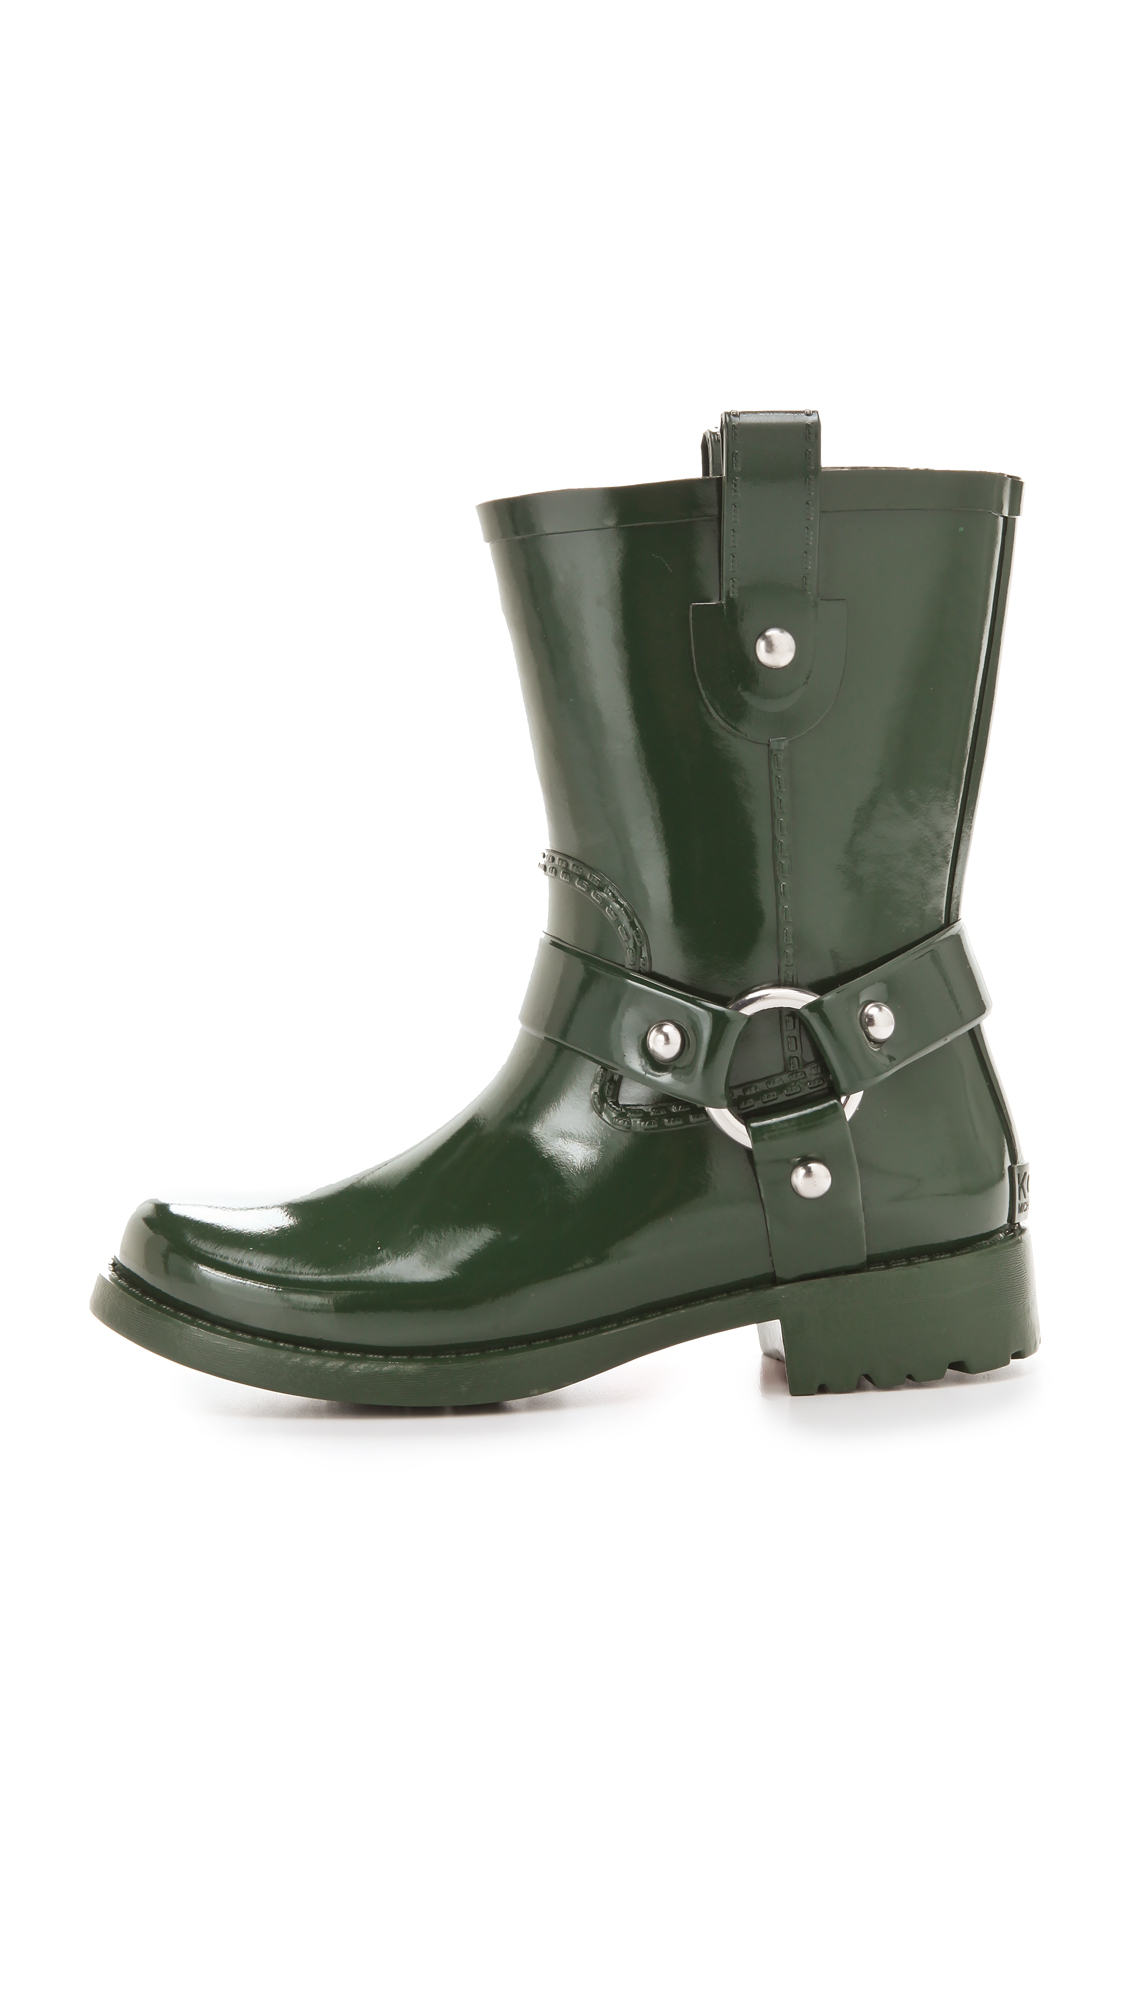 Kors By Michael Kors Stormette Rubber Boots In Green | Lyst